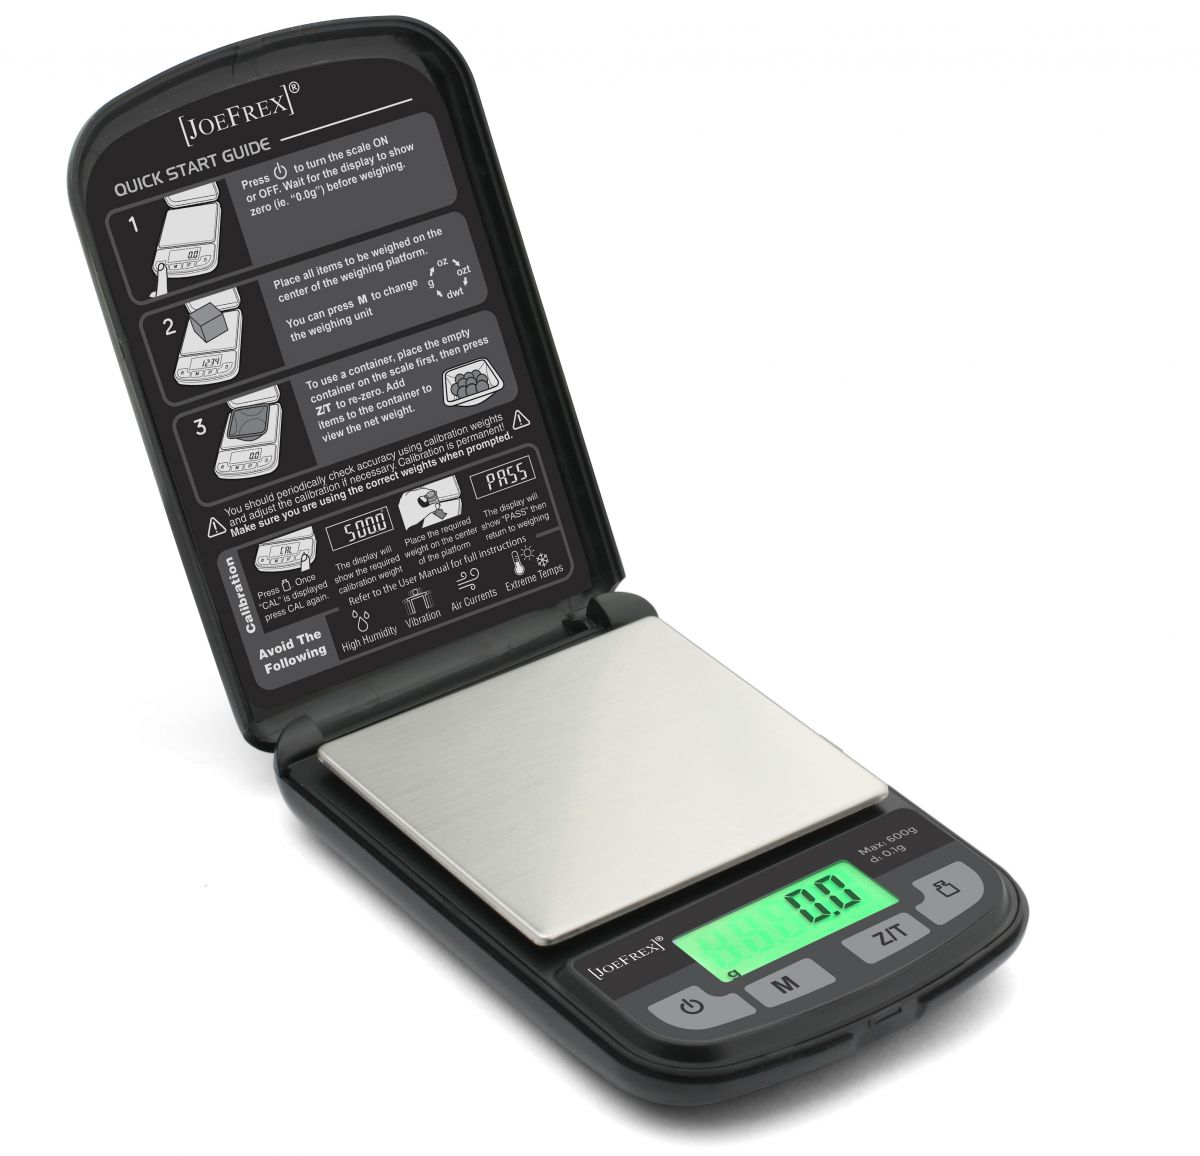 Joe Frex Digital Scale